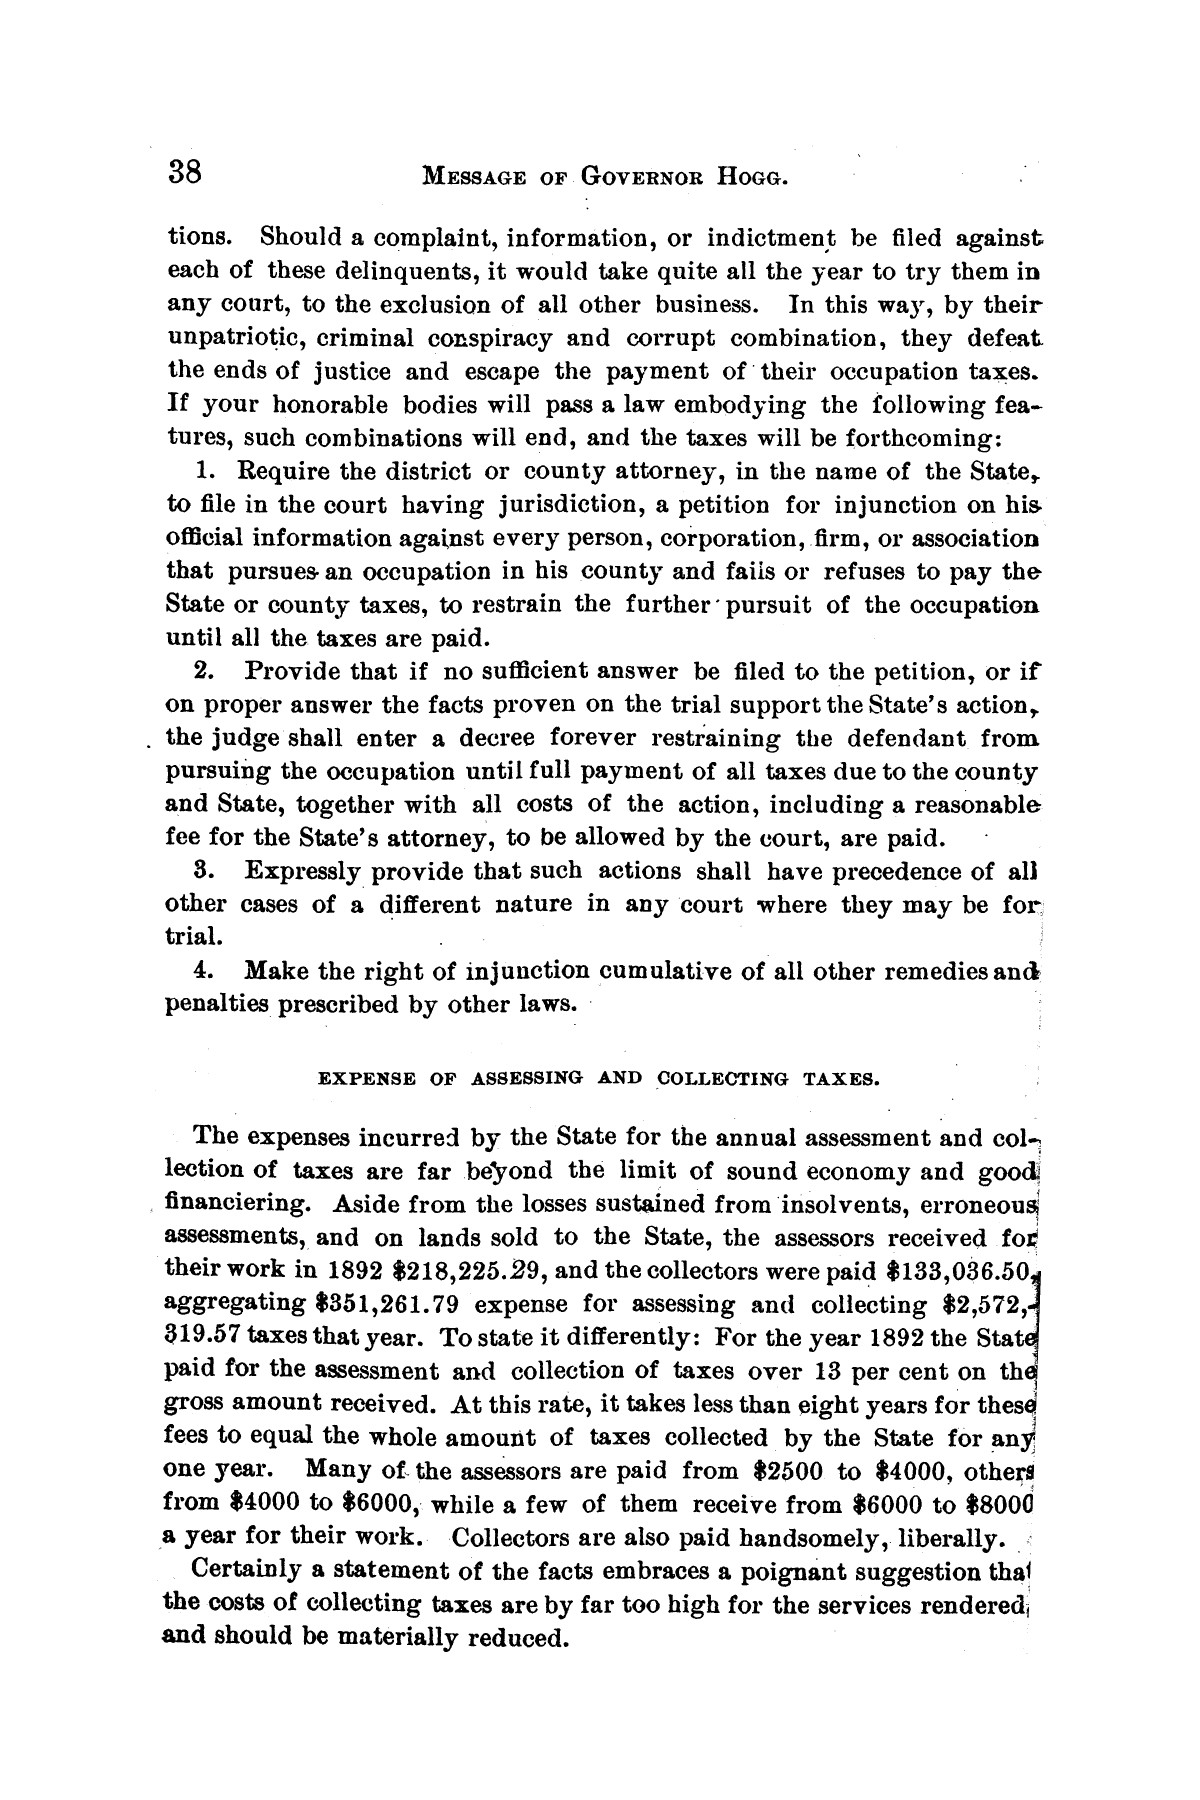 Message of Governor James S. Hogg to the twenty-fourth legislature of Texas                                                                                                      [Sequence #]: 38 of 48